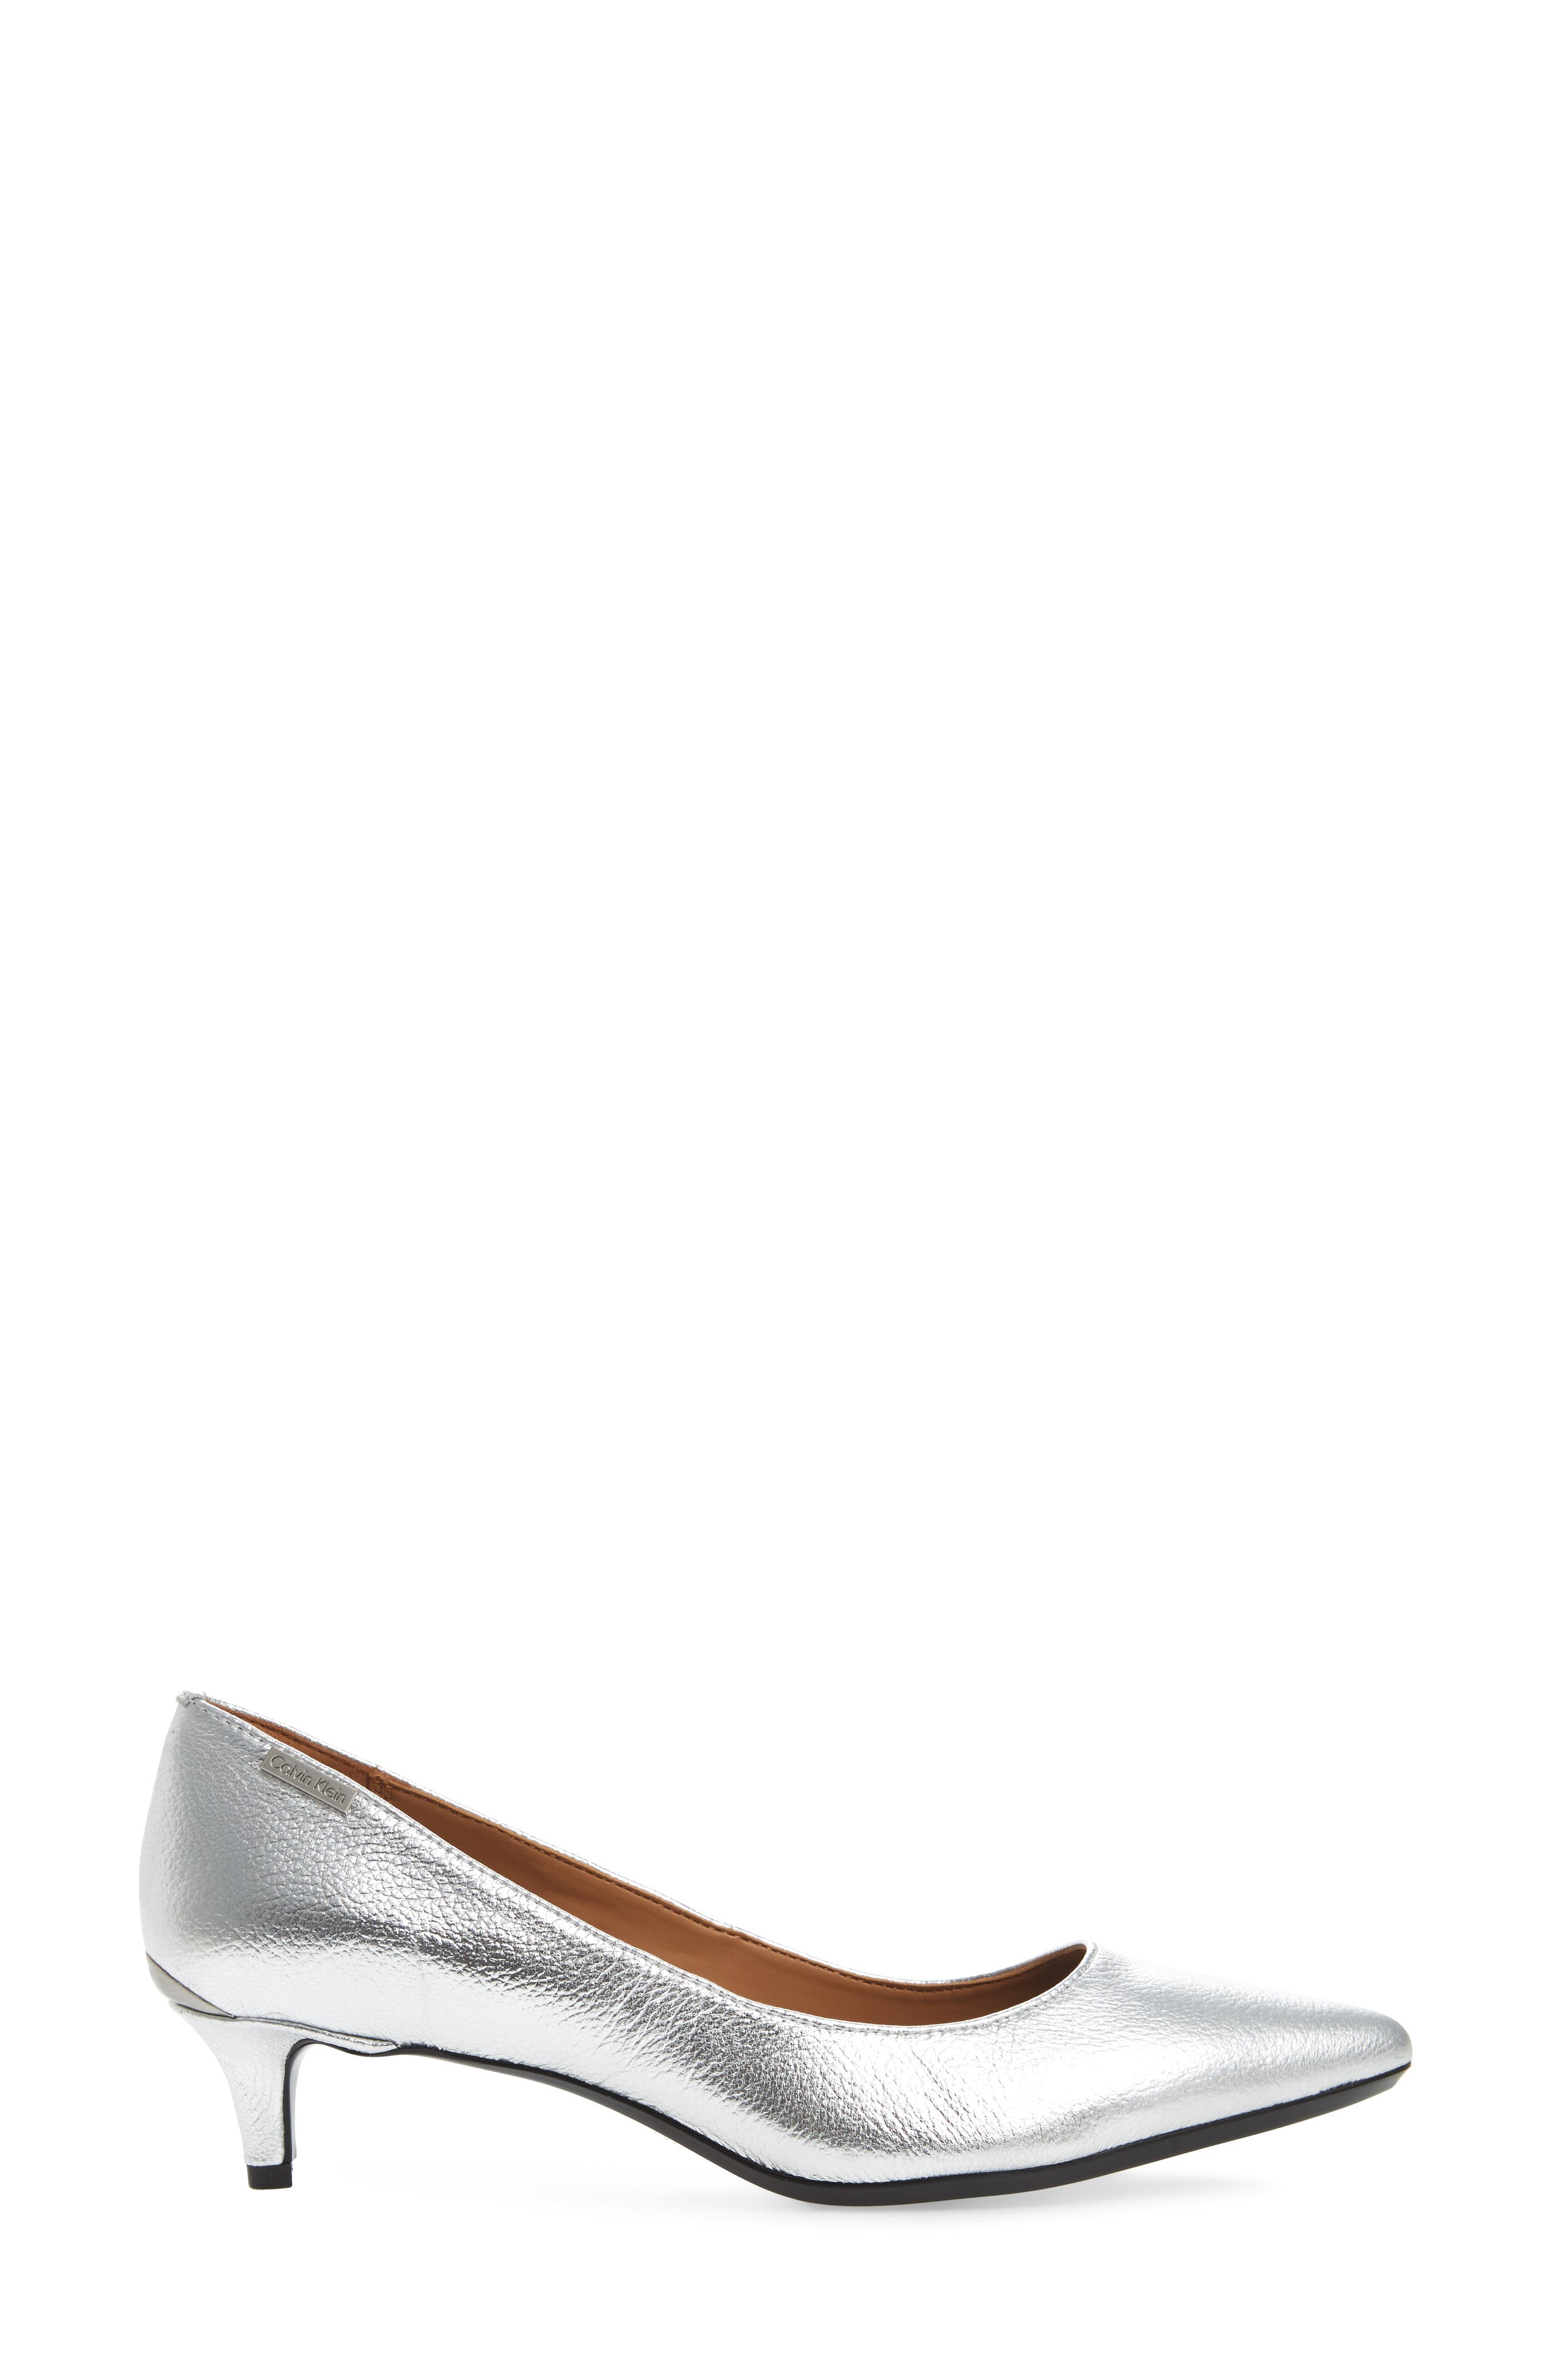 Gabrianna Pump,                             Alternate thumbnail 3, color,                             Silver Leather